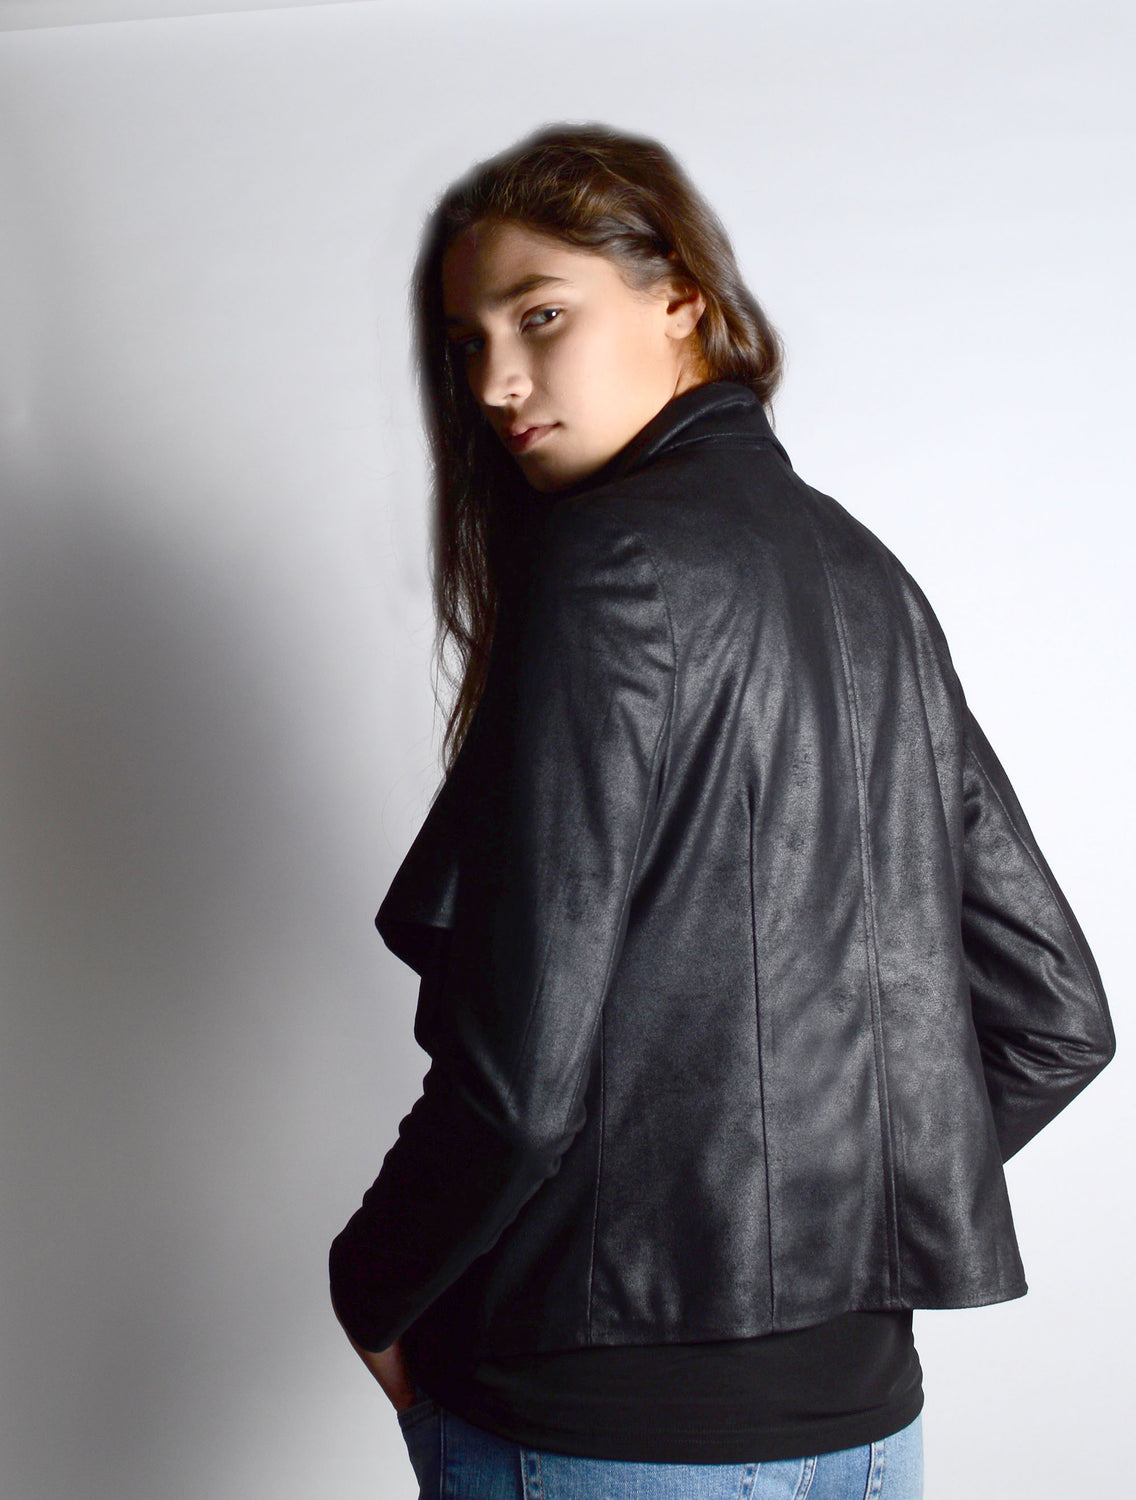 Jacket 7097 in Black